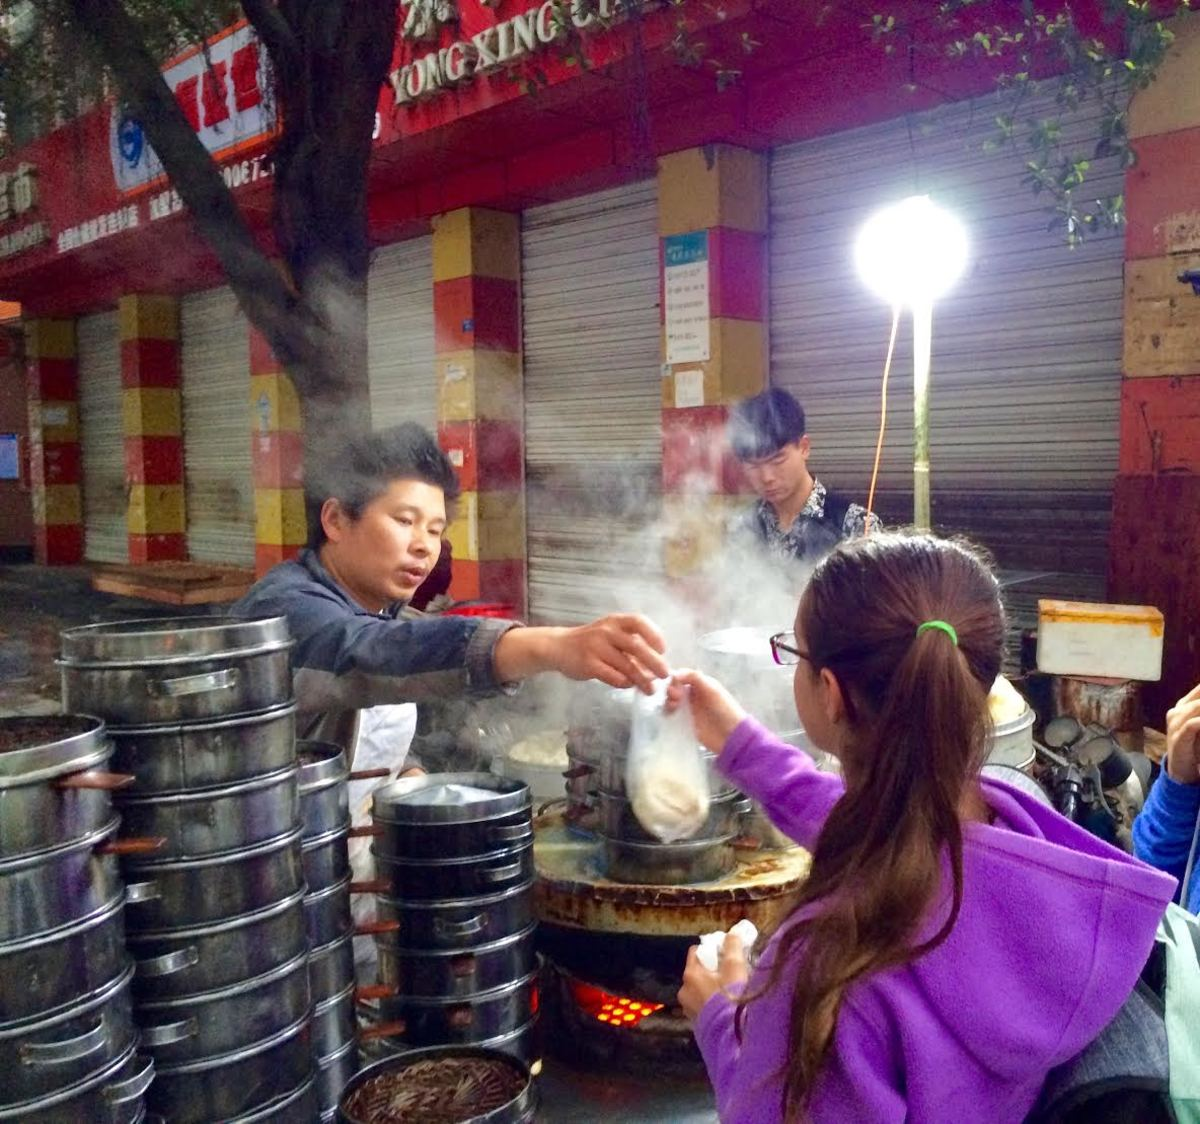 Our daughter orders breakfast from a street vendor in Chengdu, Sichuan Province